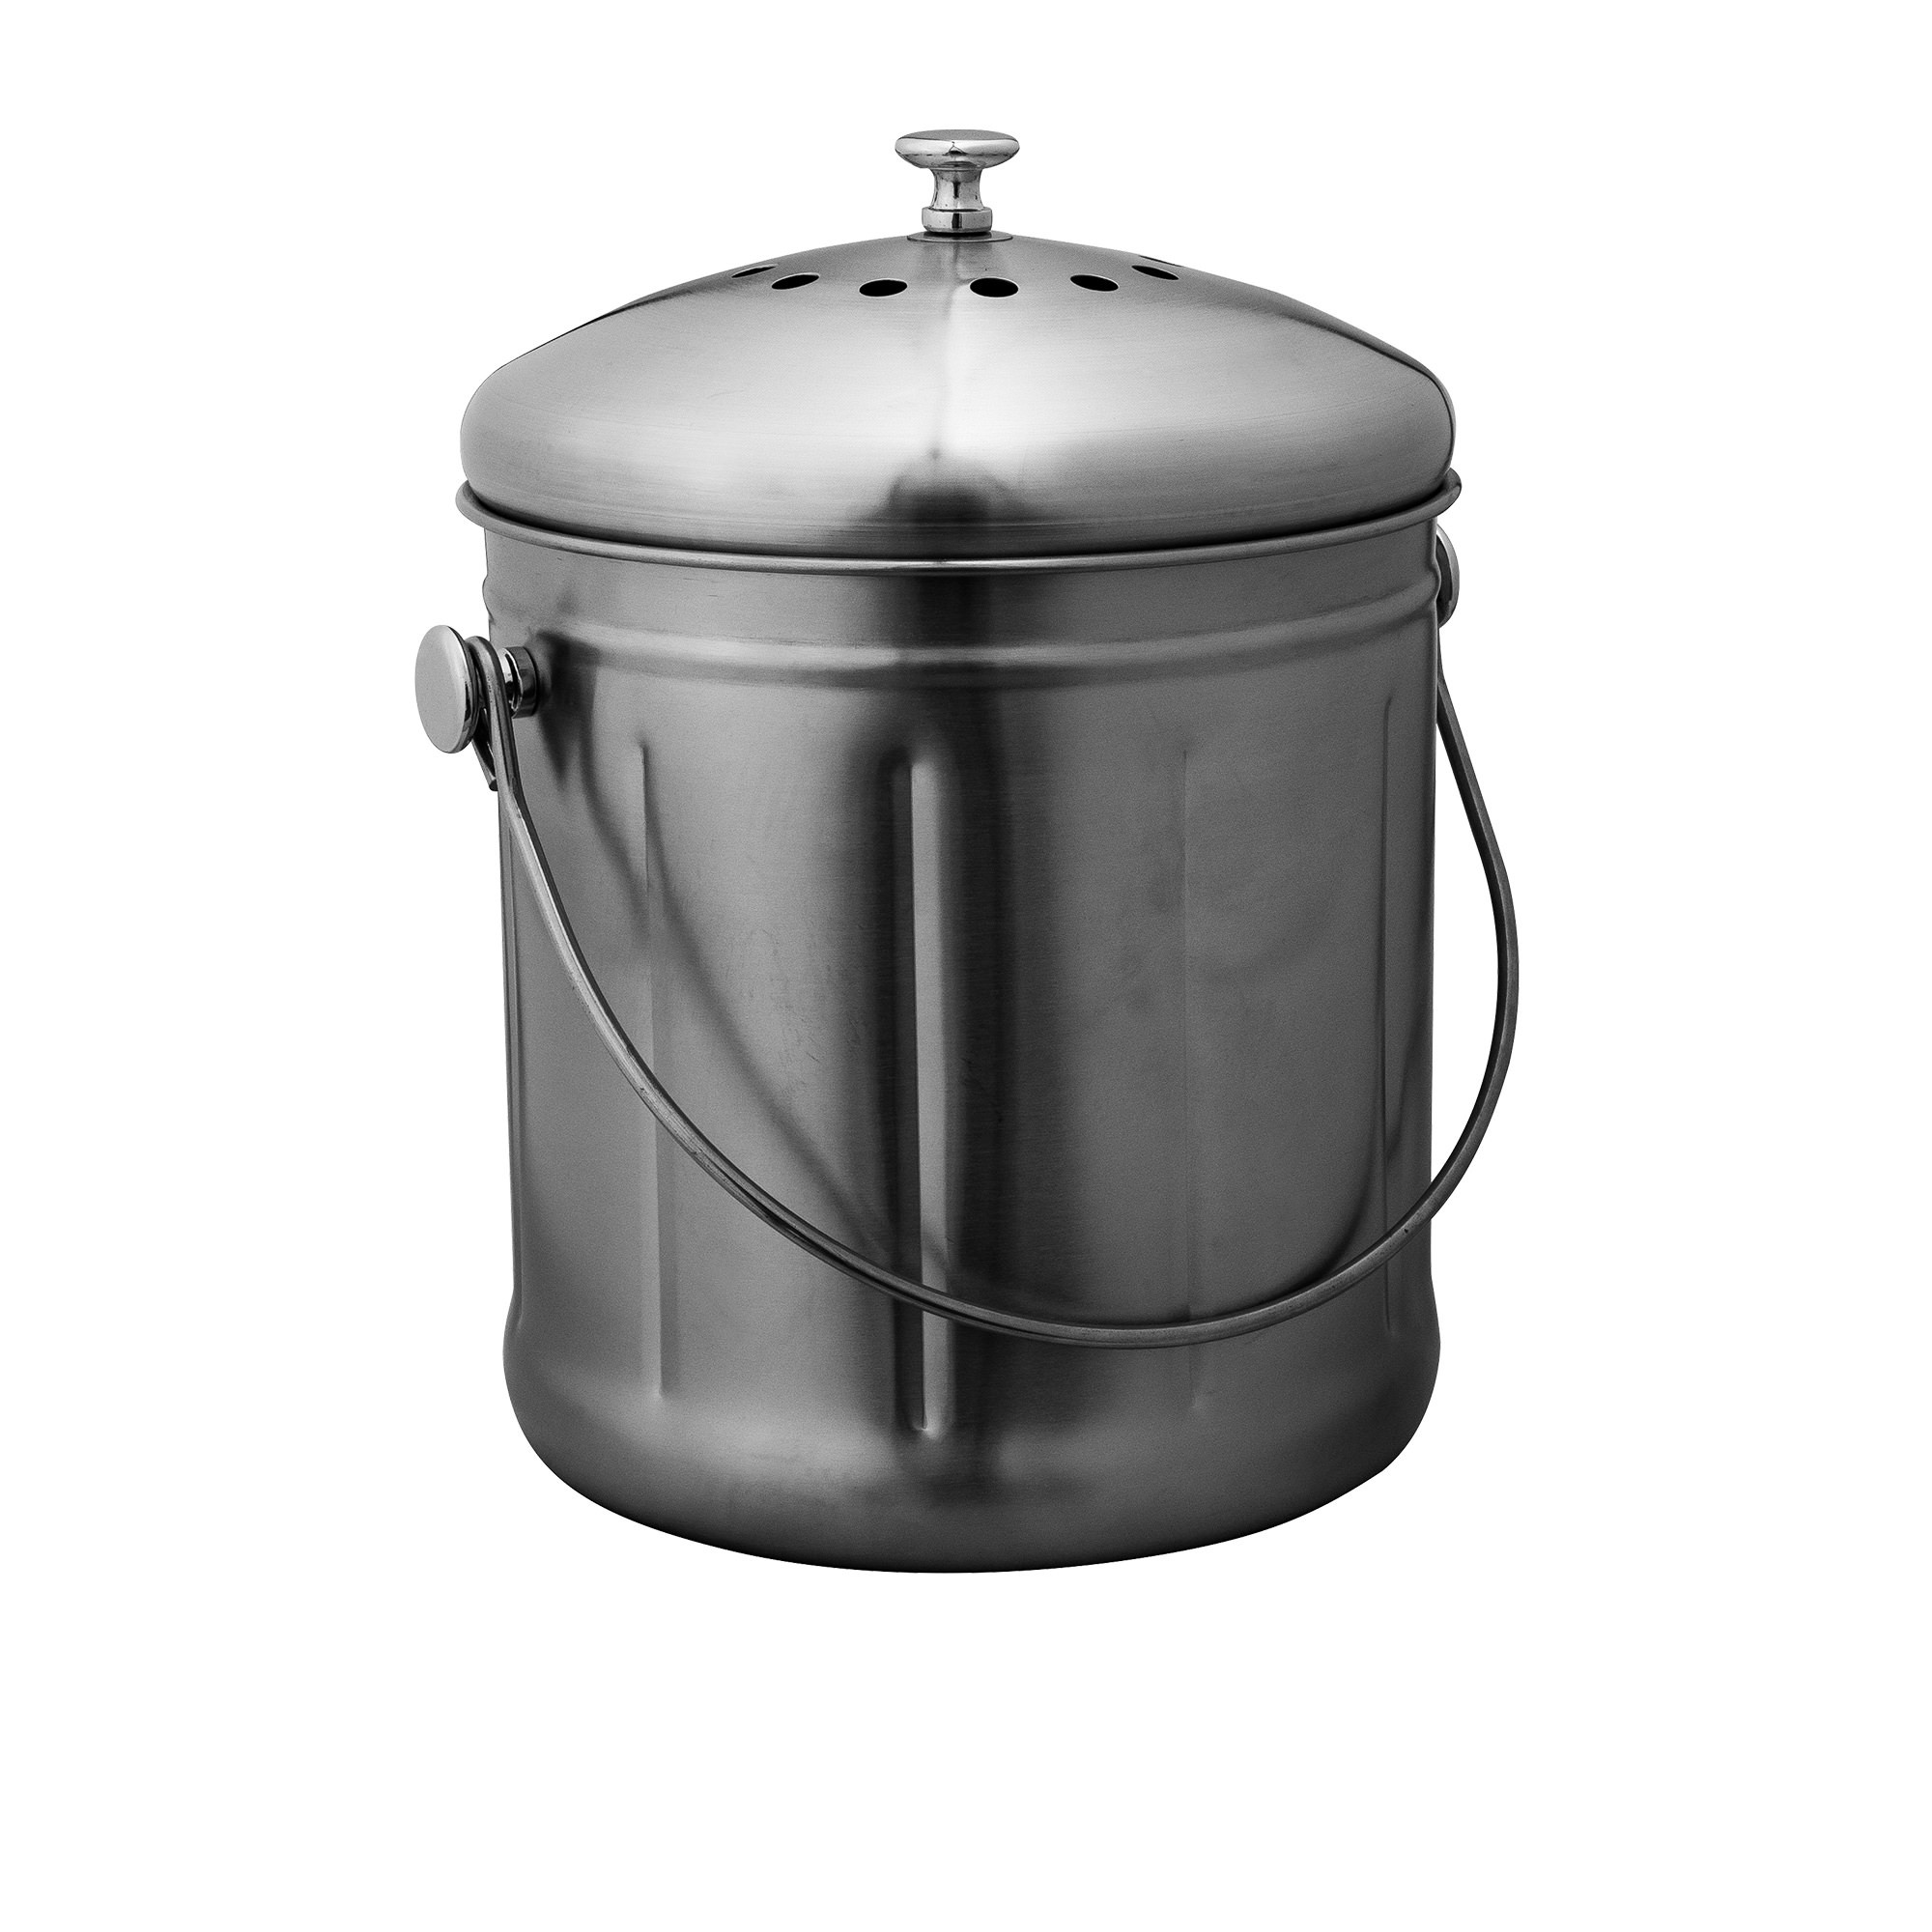 Avanti Compost Bin 10L Brushed Stainless Steel